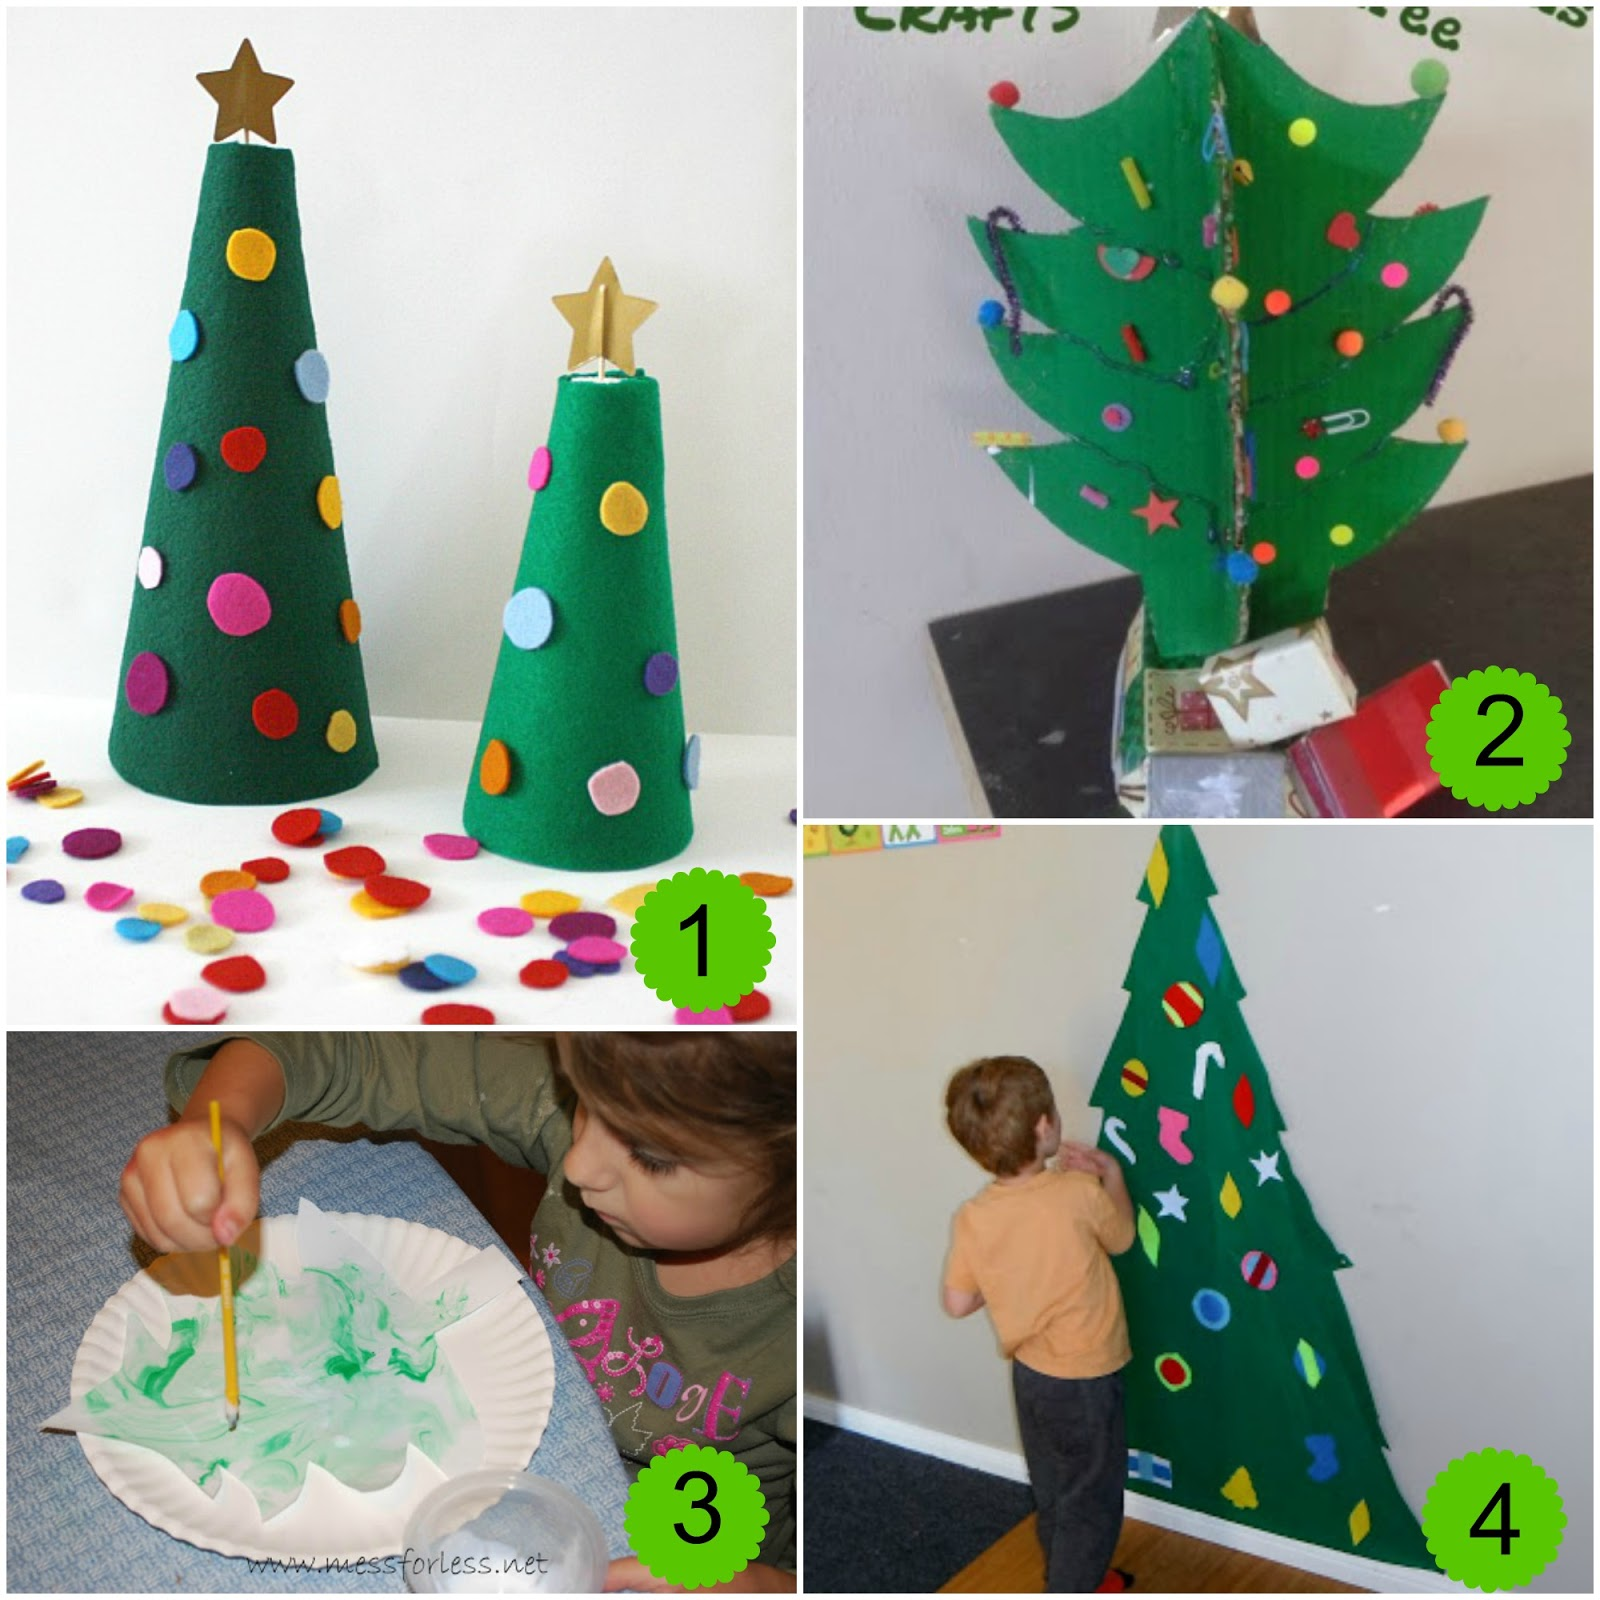 xmas tree pictures for kids - photo #35